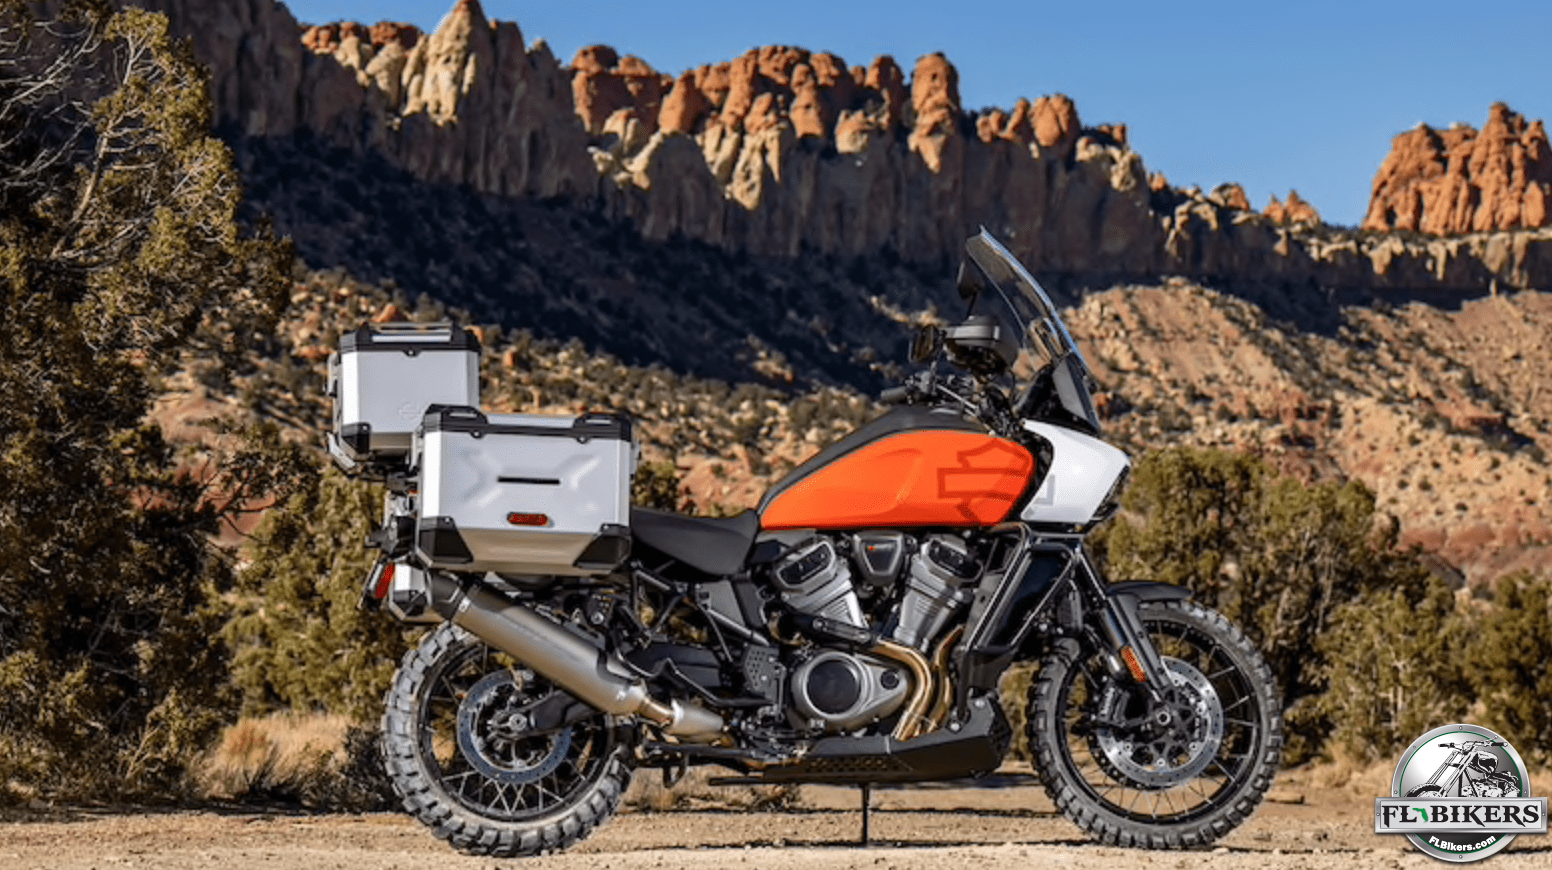 A Look at Harley-Davidson's 2021 Motorcycles